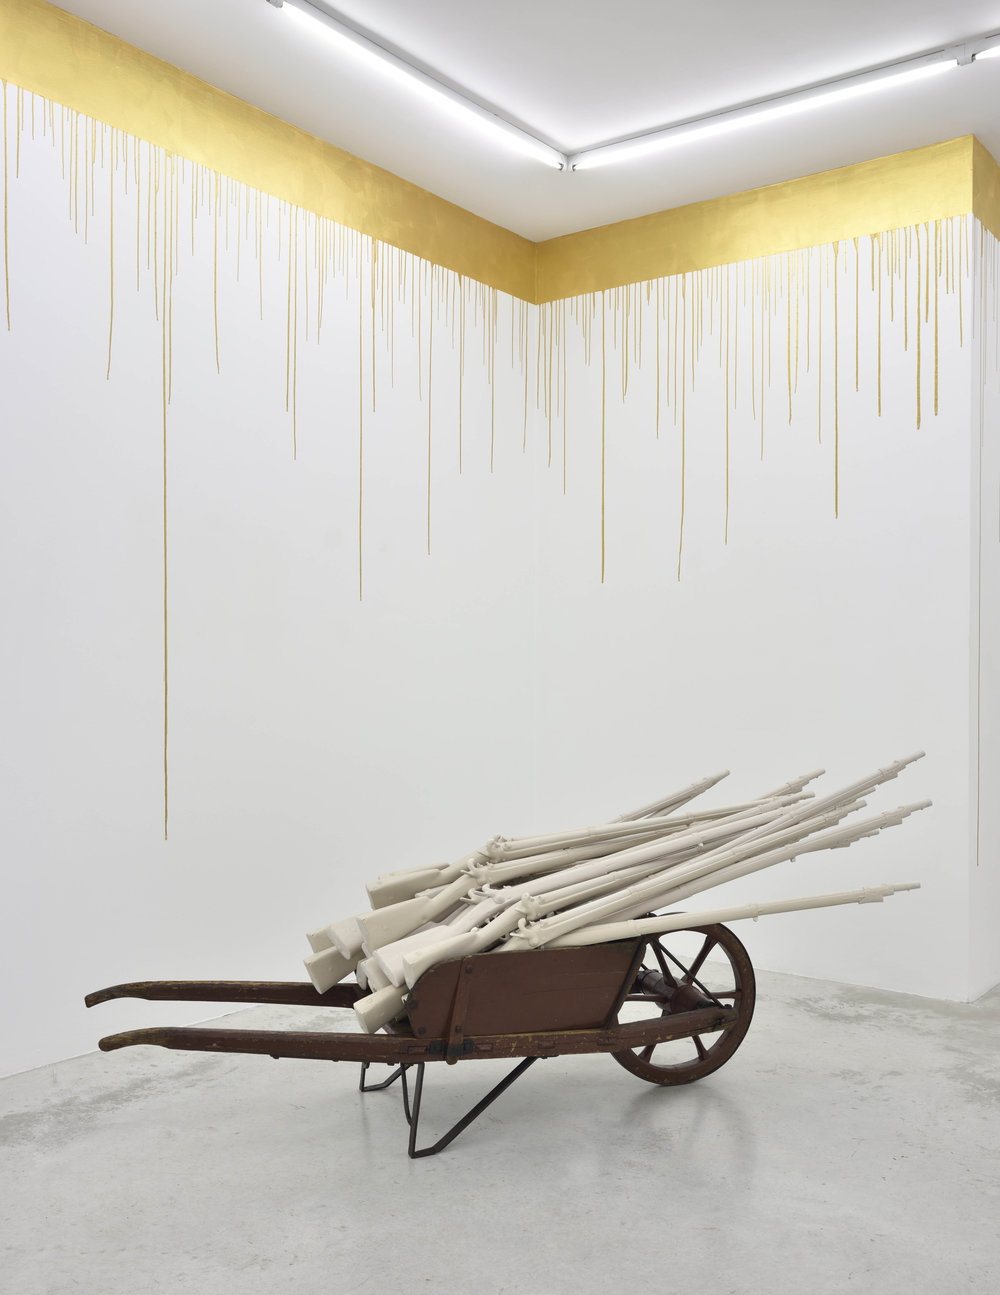 Pierre Ardouvin  Les fusils de Ménélik , 2018 wheelbarrow and castings of resin guns 47 1/4 x 37 13/32 x 74 13/16 in (120 x 95 x 190 cm)